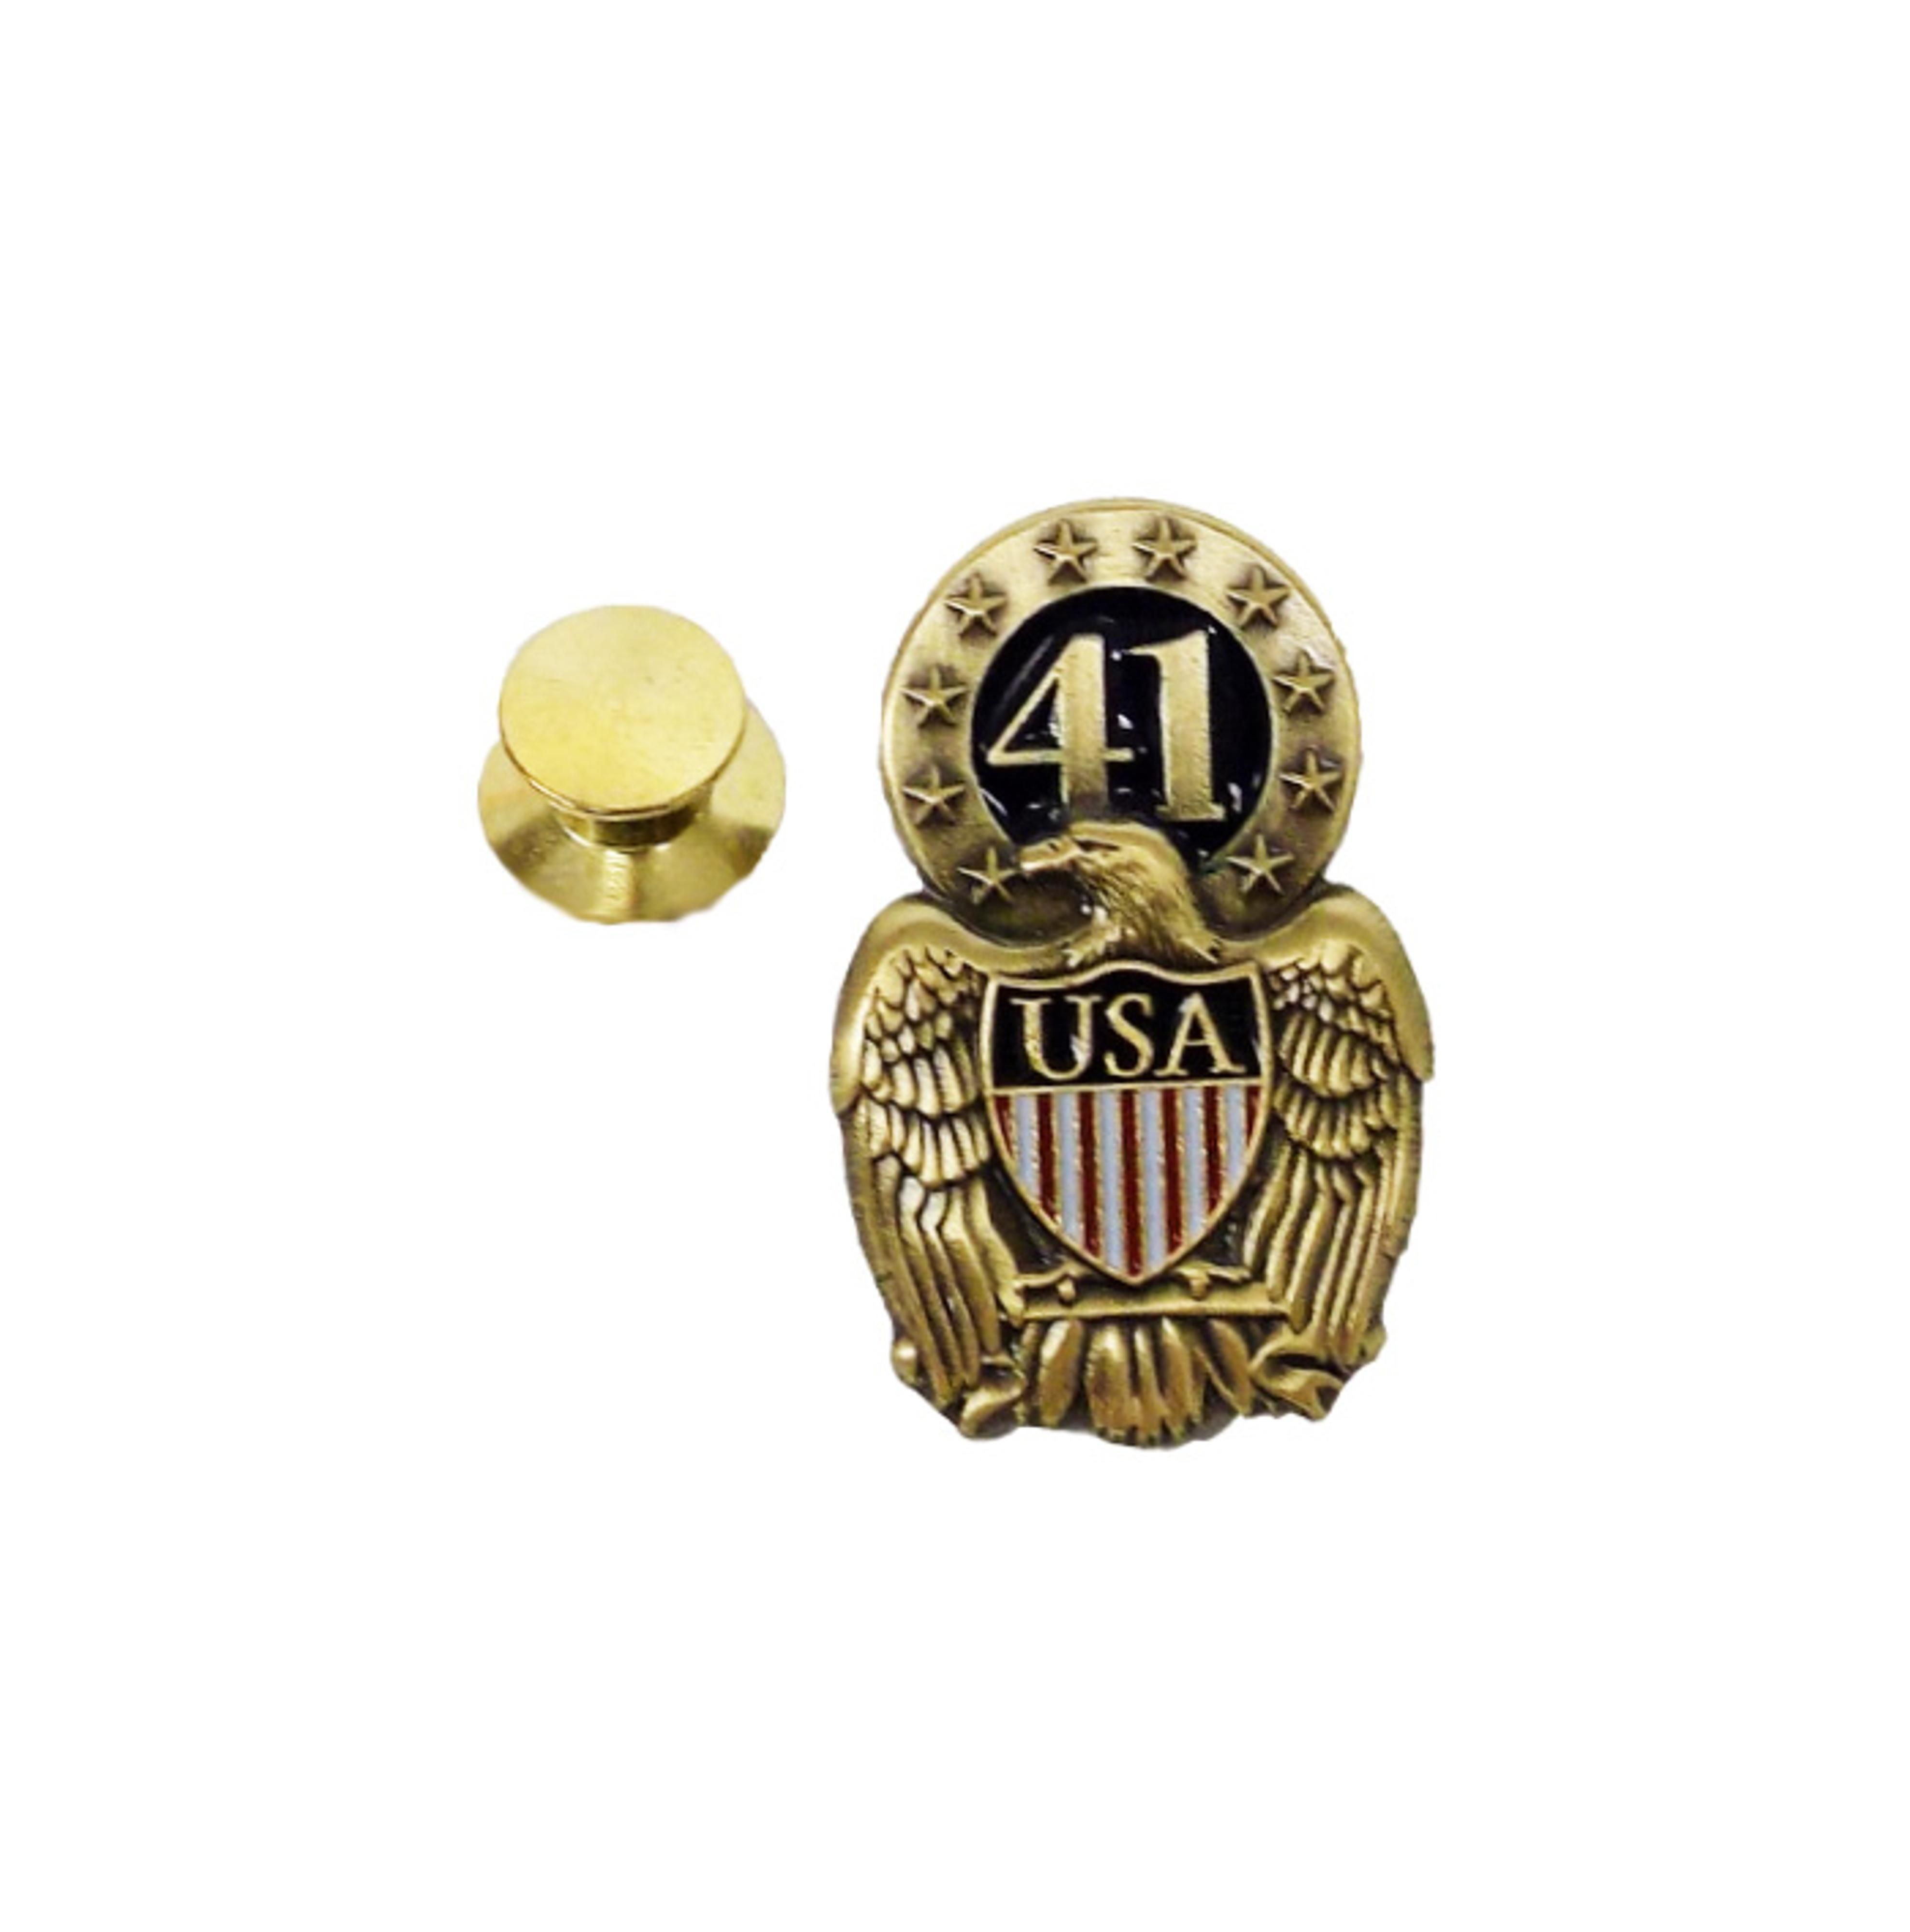 Pins/Brooches : the George Bush Museum Store